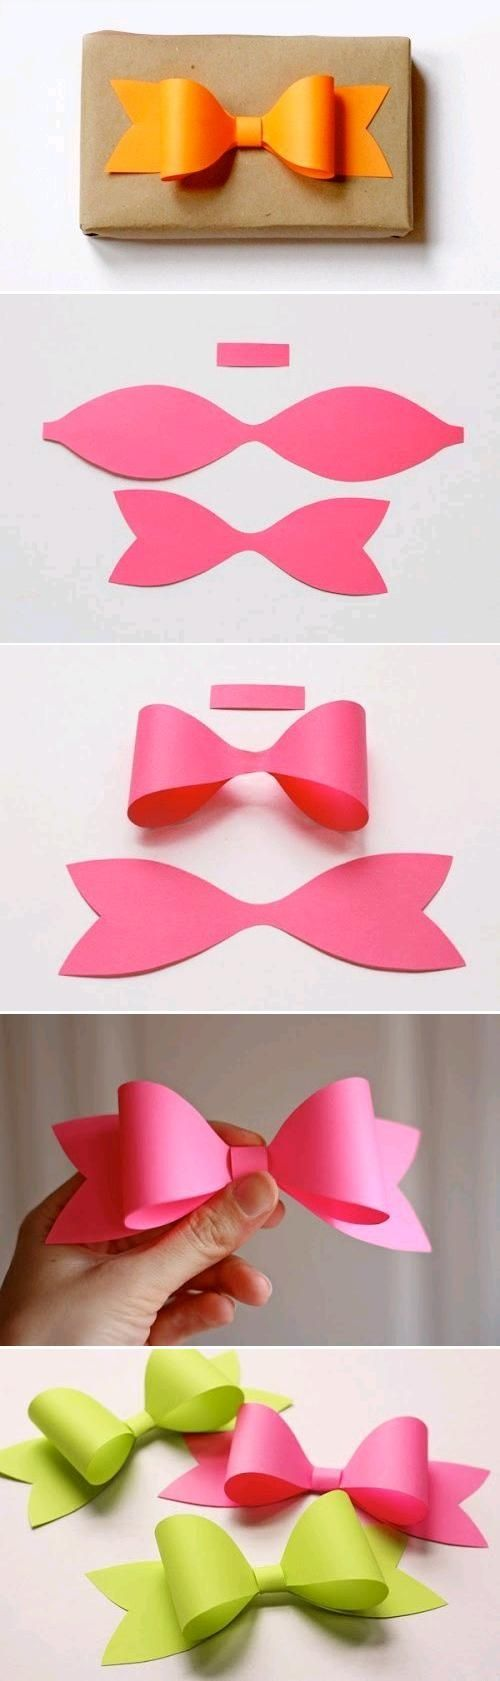 DIY Perfect Bow Tutorial